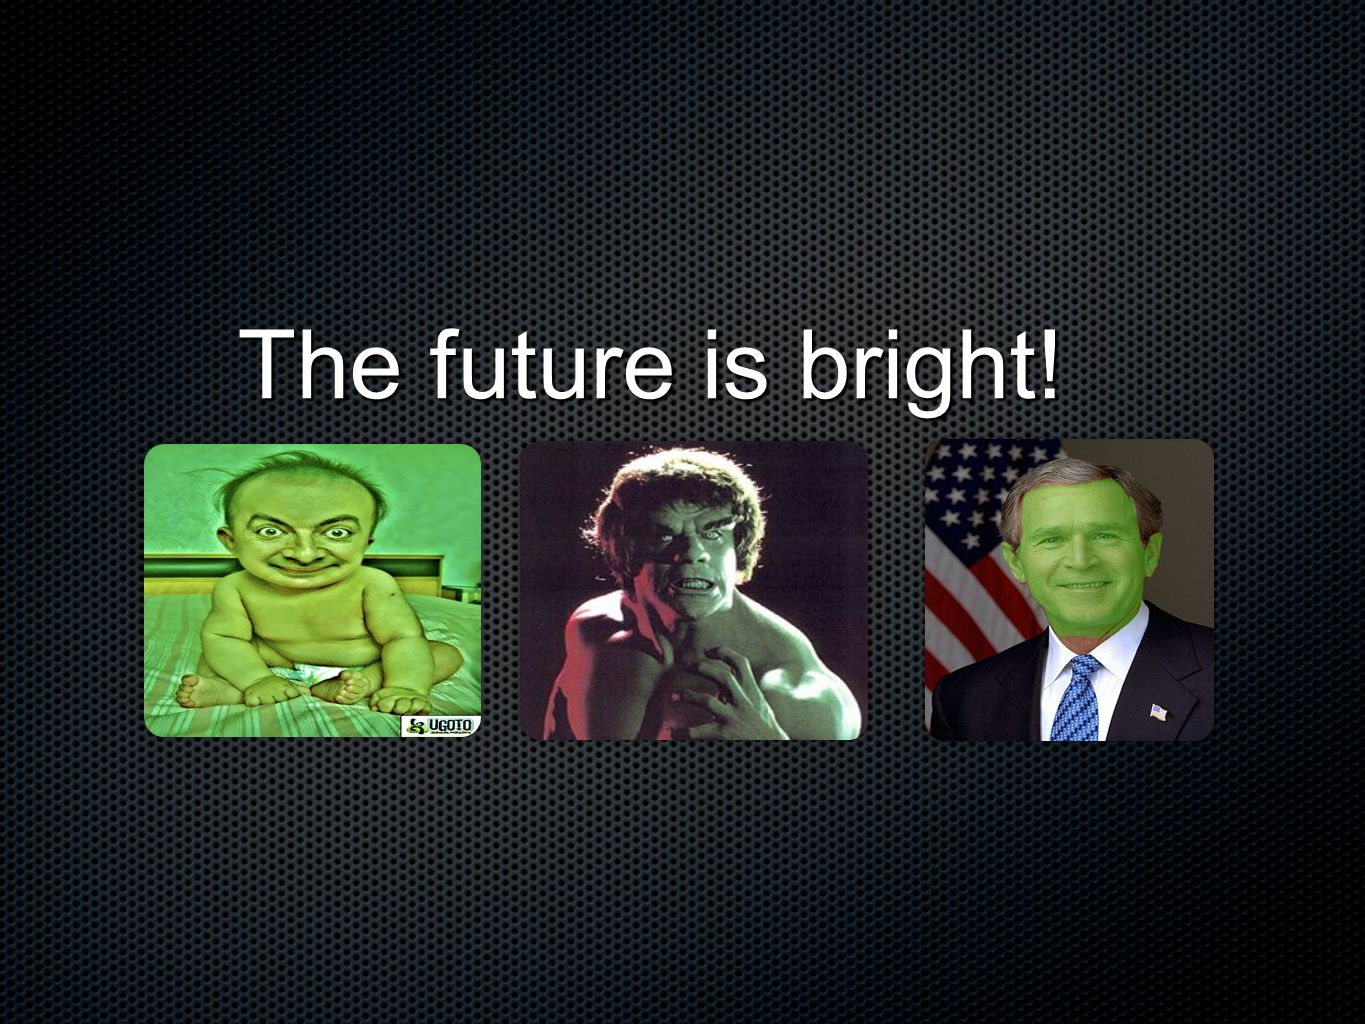 The future is bright!